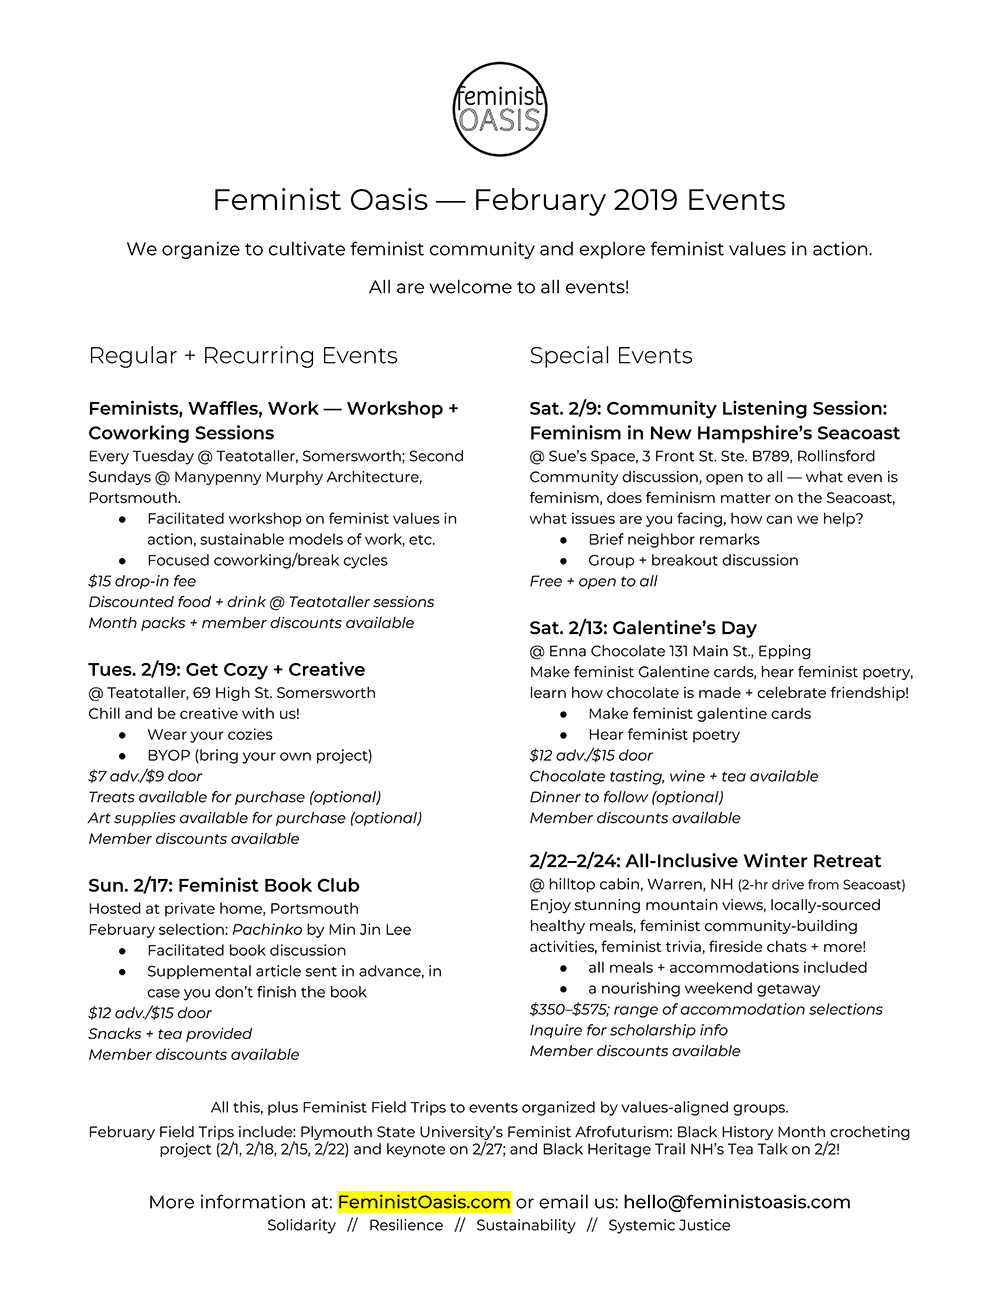 Our February 2019 events lineup